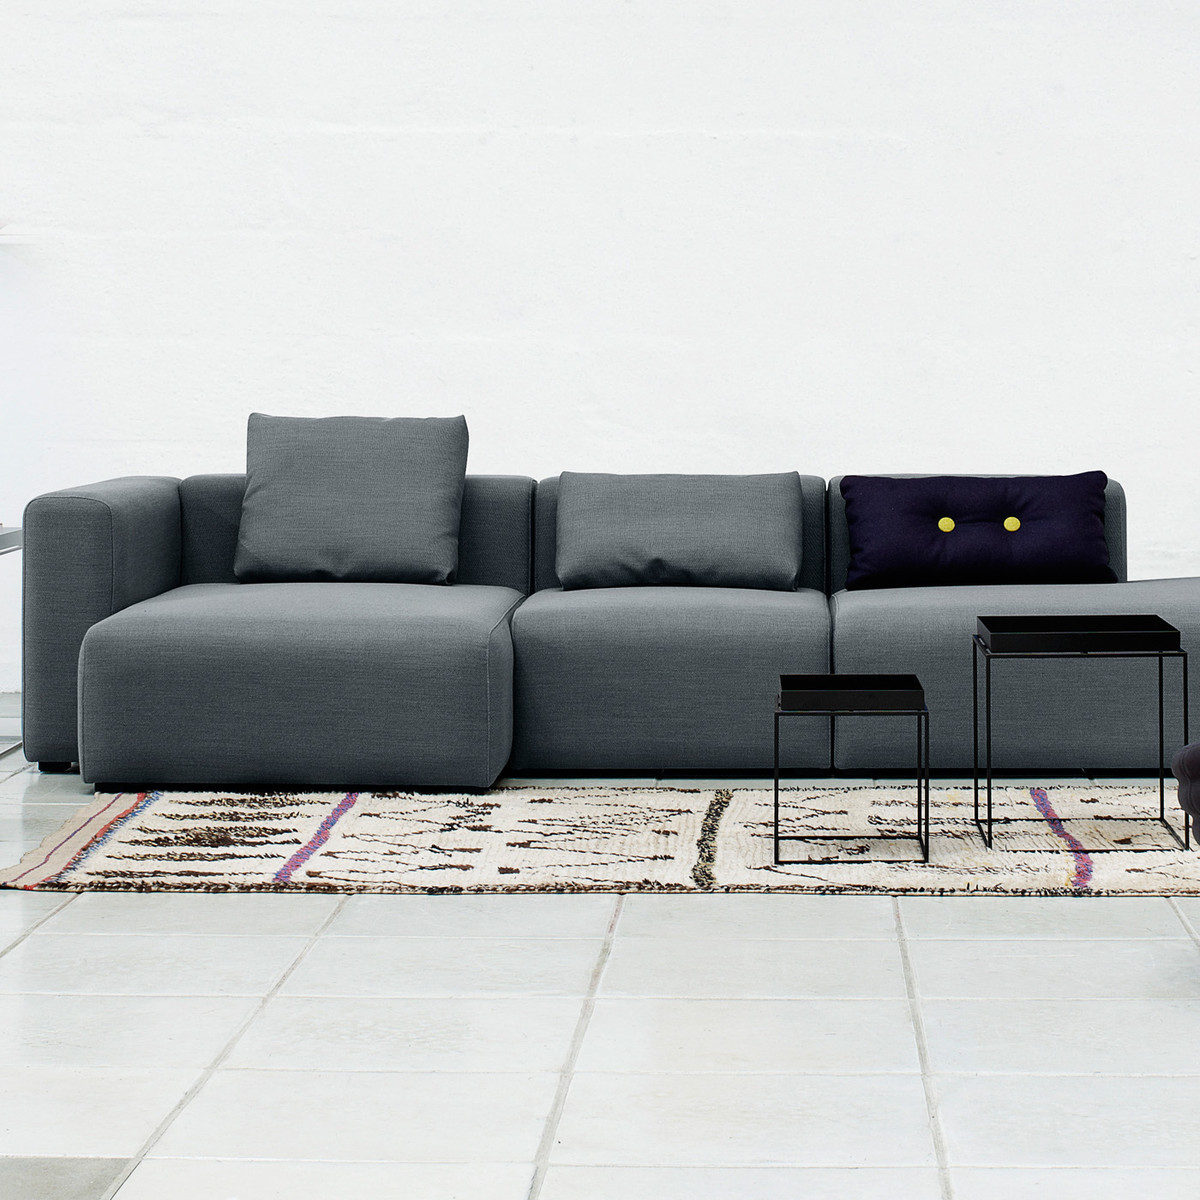 Enjoyable Mags Sofa Combination 4 Gmtry Best Dining Table And Chair Ideas Images Gmtryco